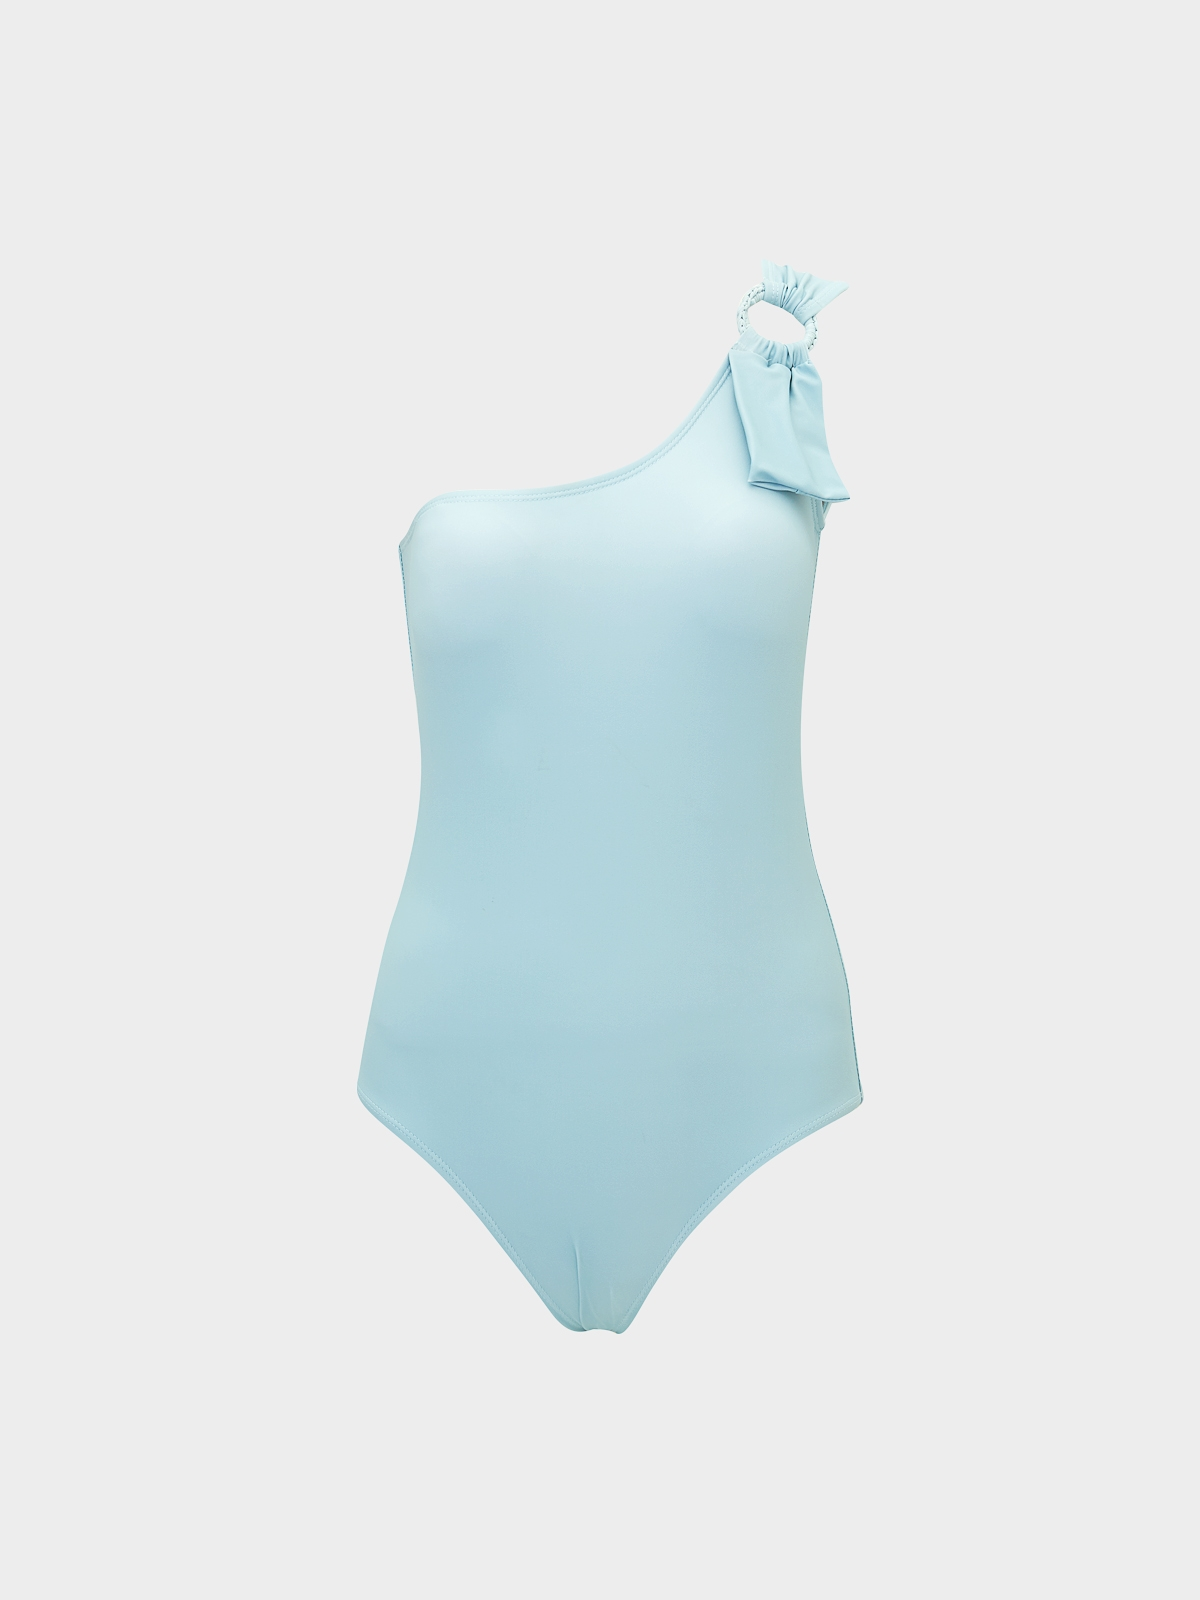 Sugarcoat Jelly Beans Swimsuit Blue